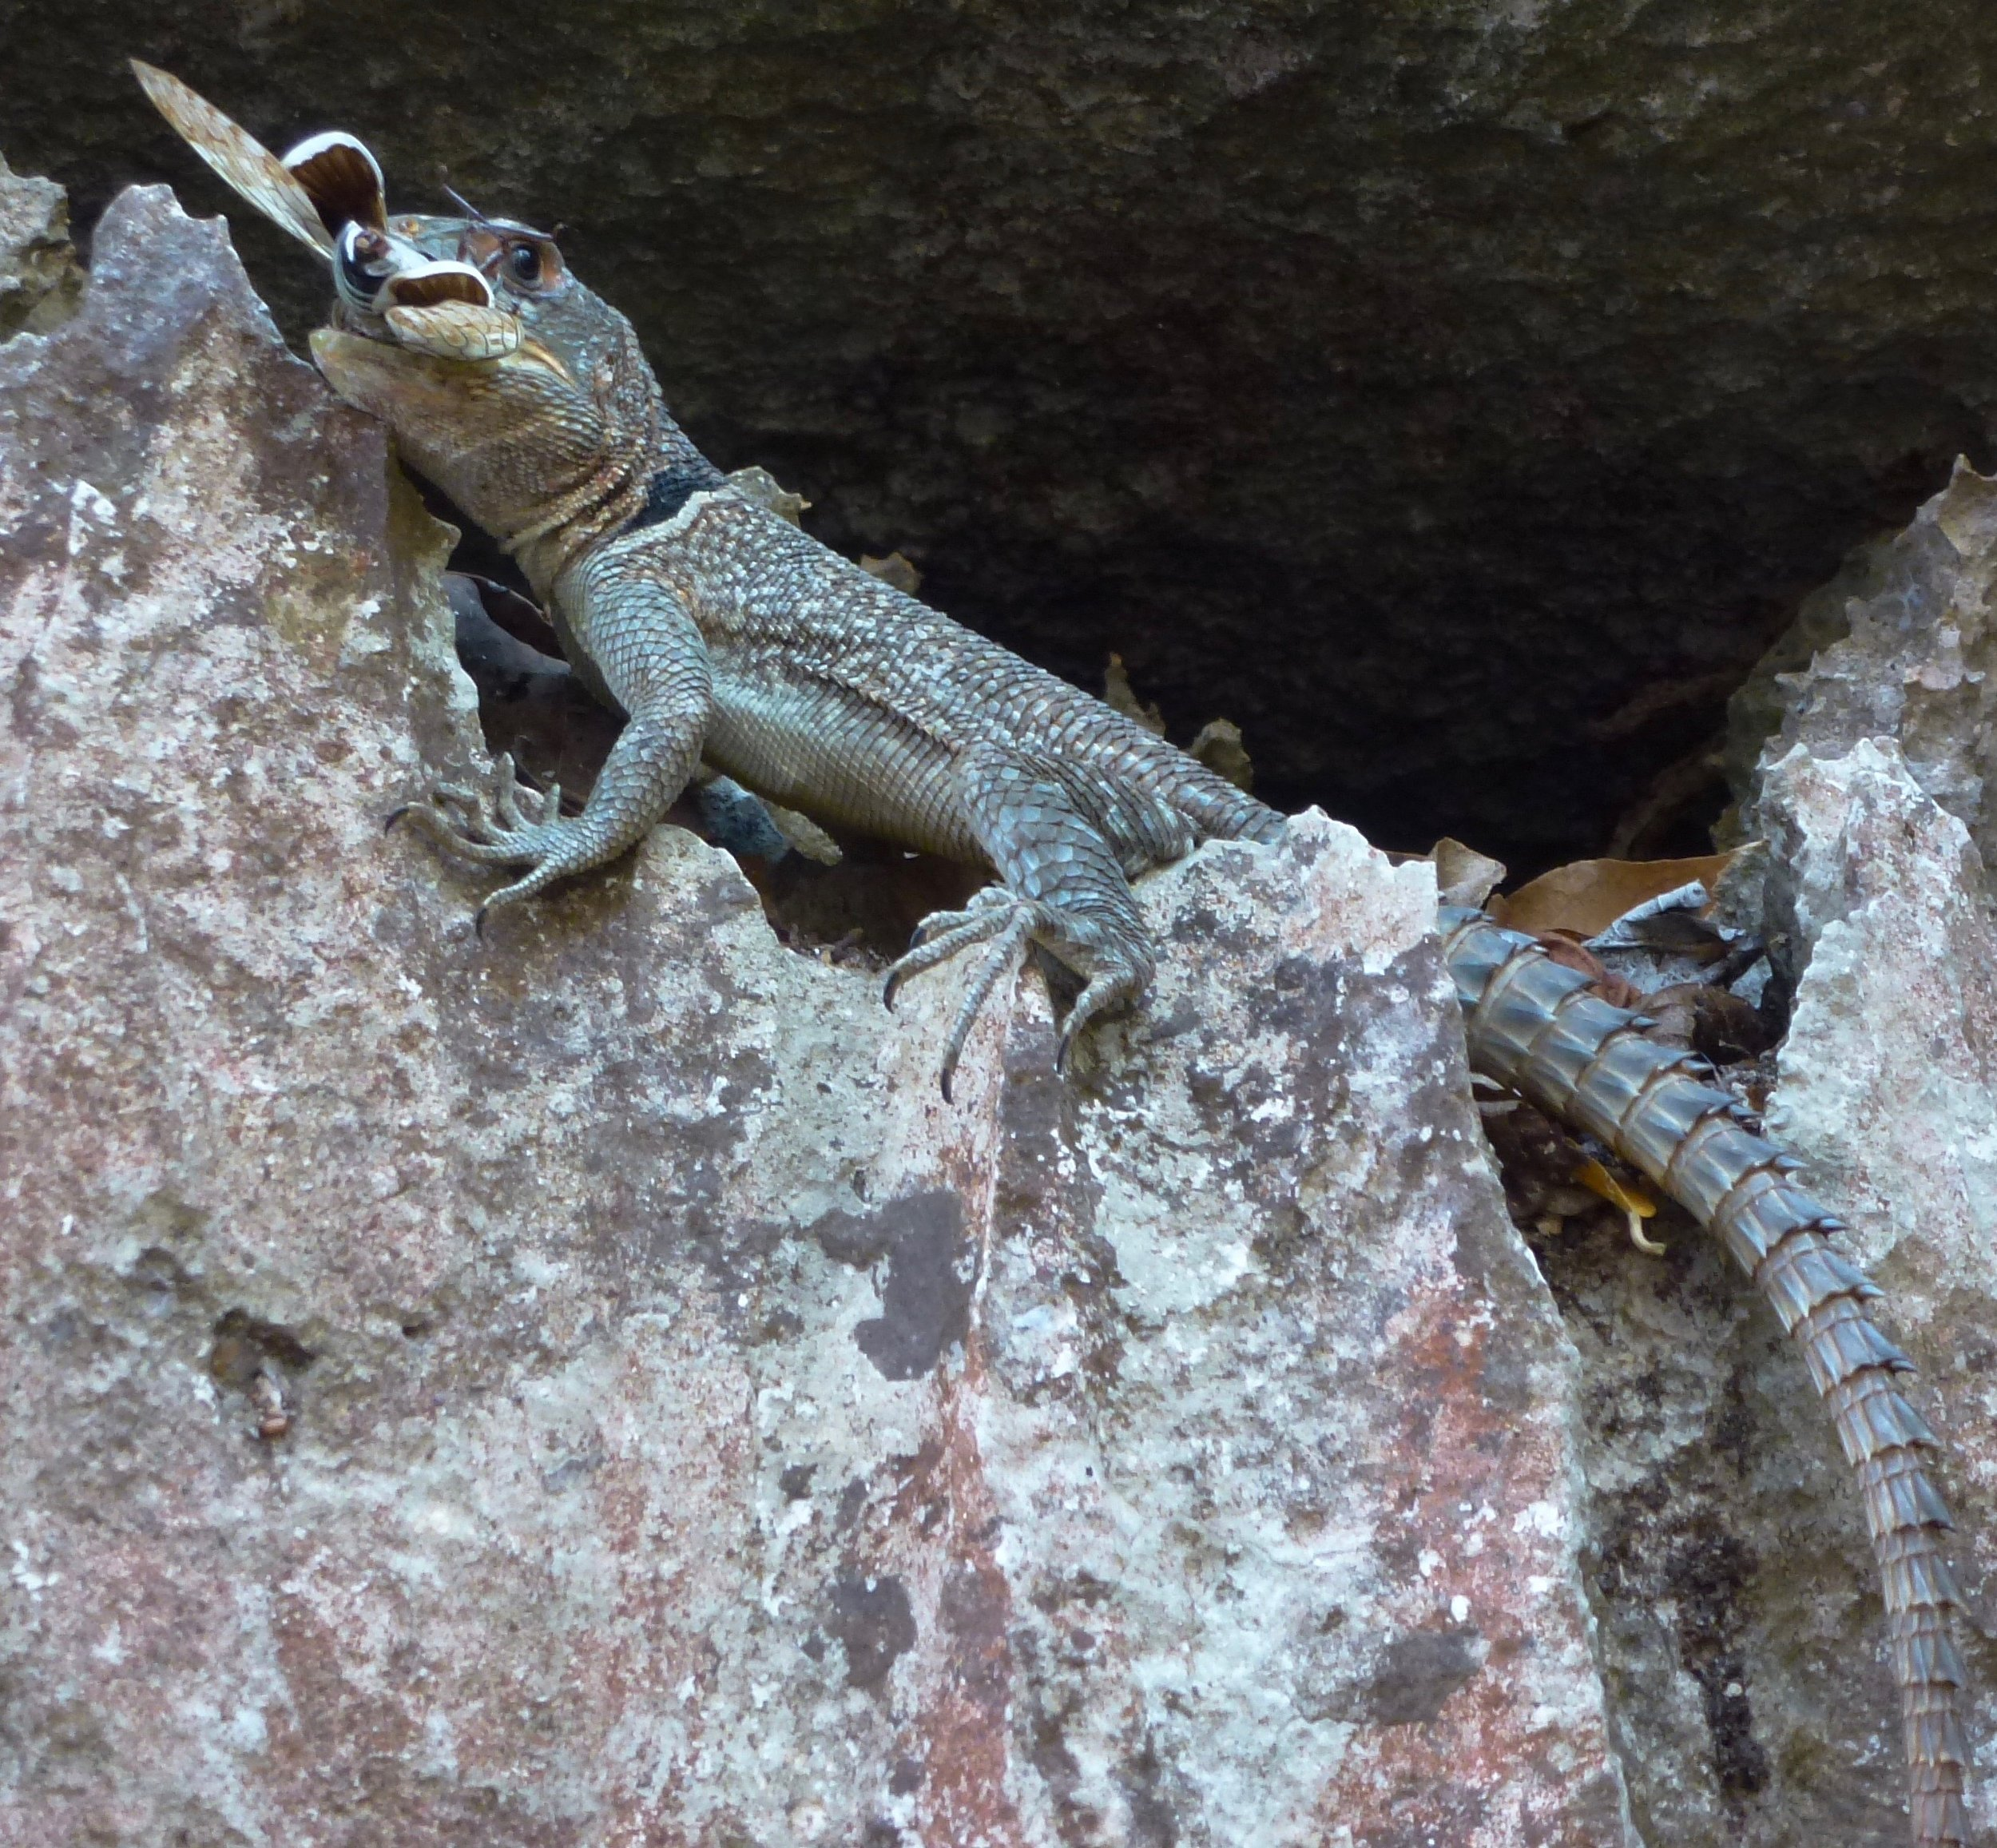 A collared iguana,  Oplurus cuvier , eating lunch at the small tsingy.